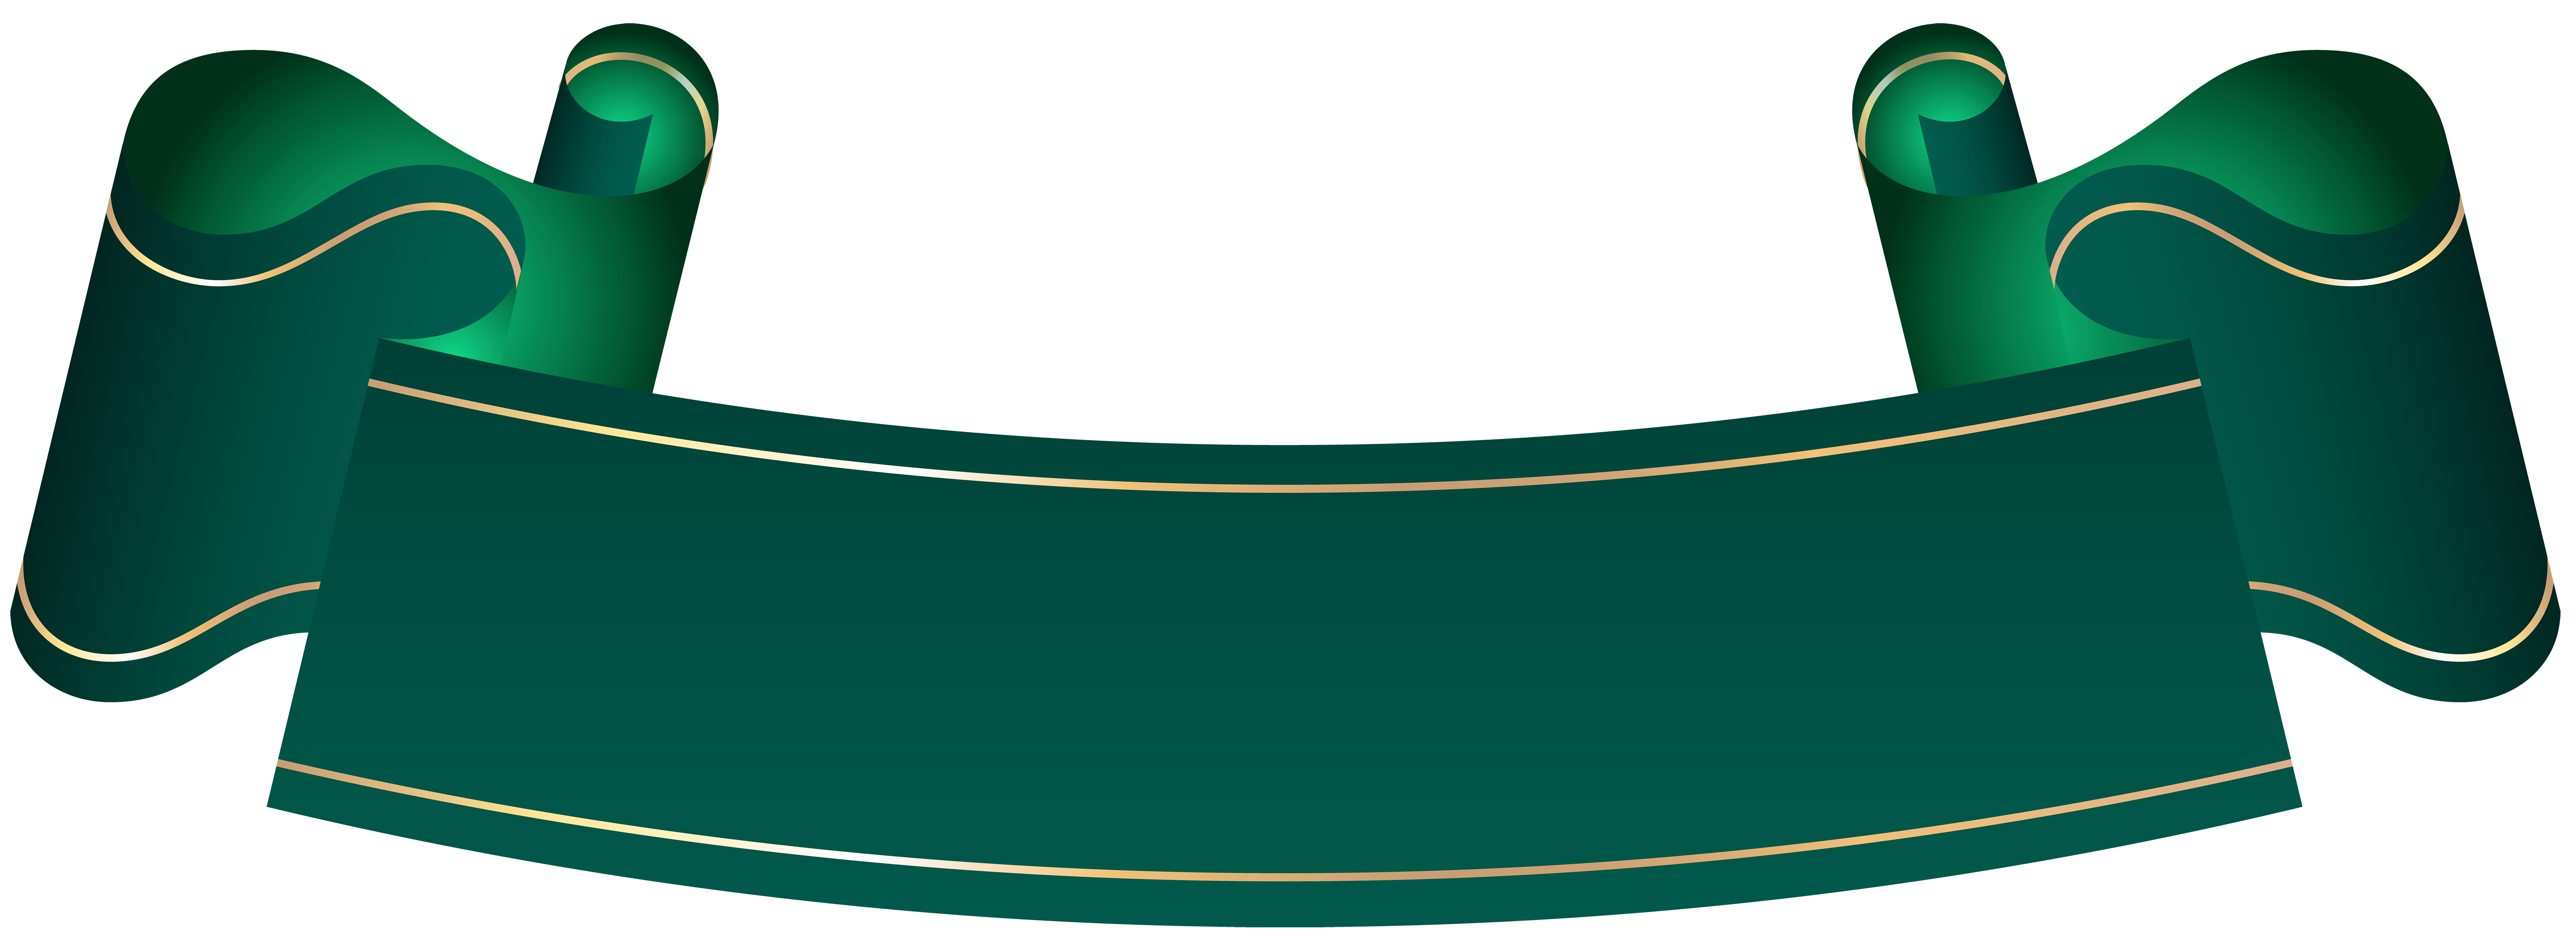 Teal banner clipart clip library library Banner Clipart Png | Free download best Banner Clipart Png ... clip library library